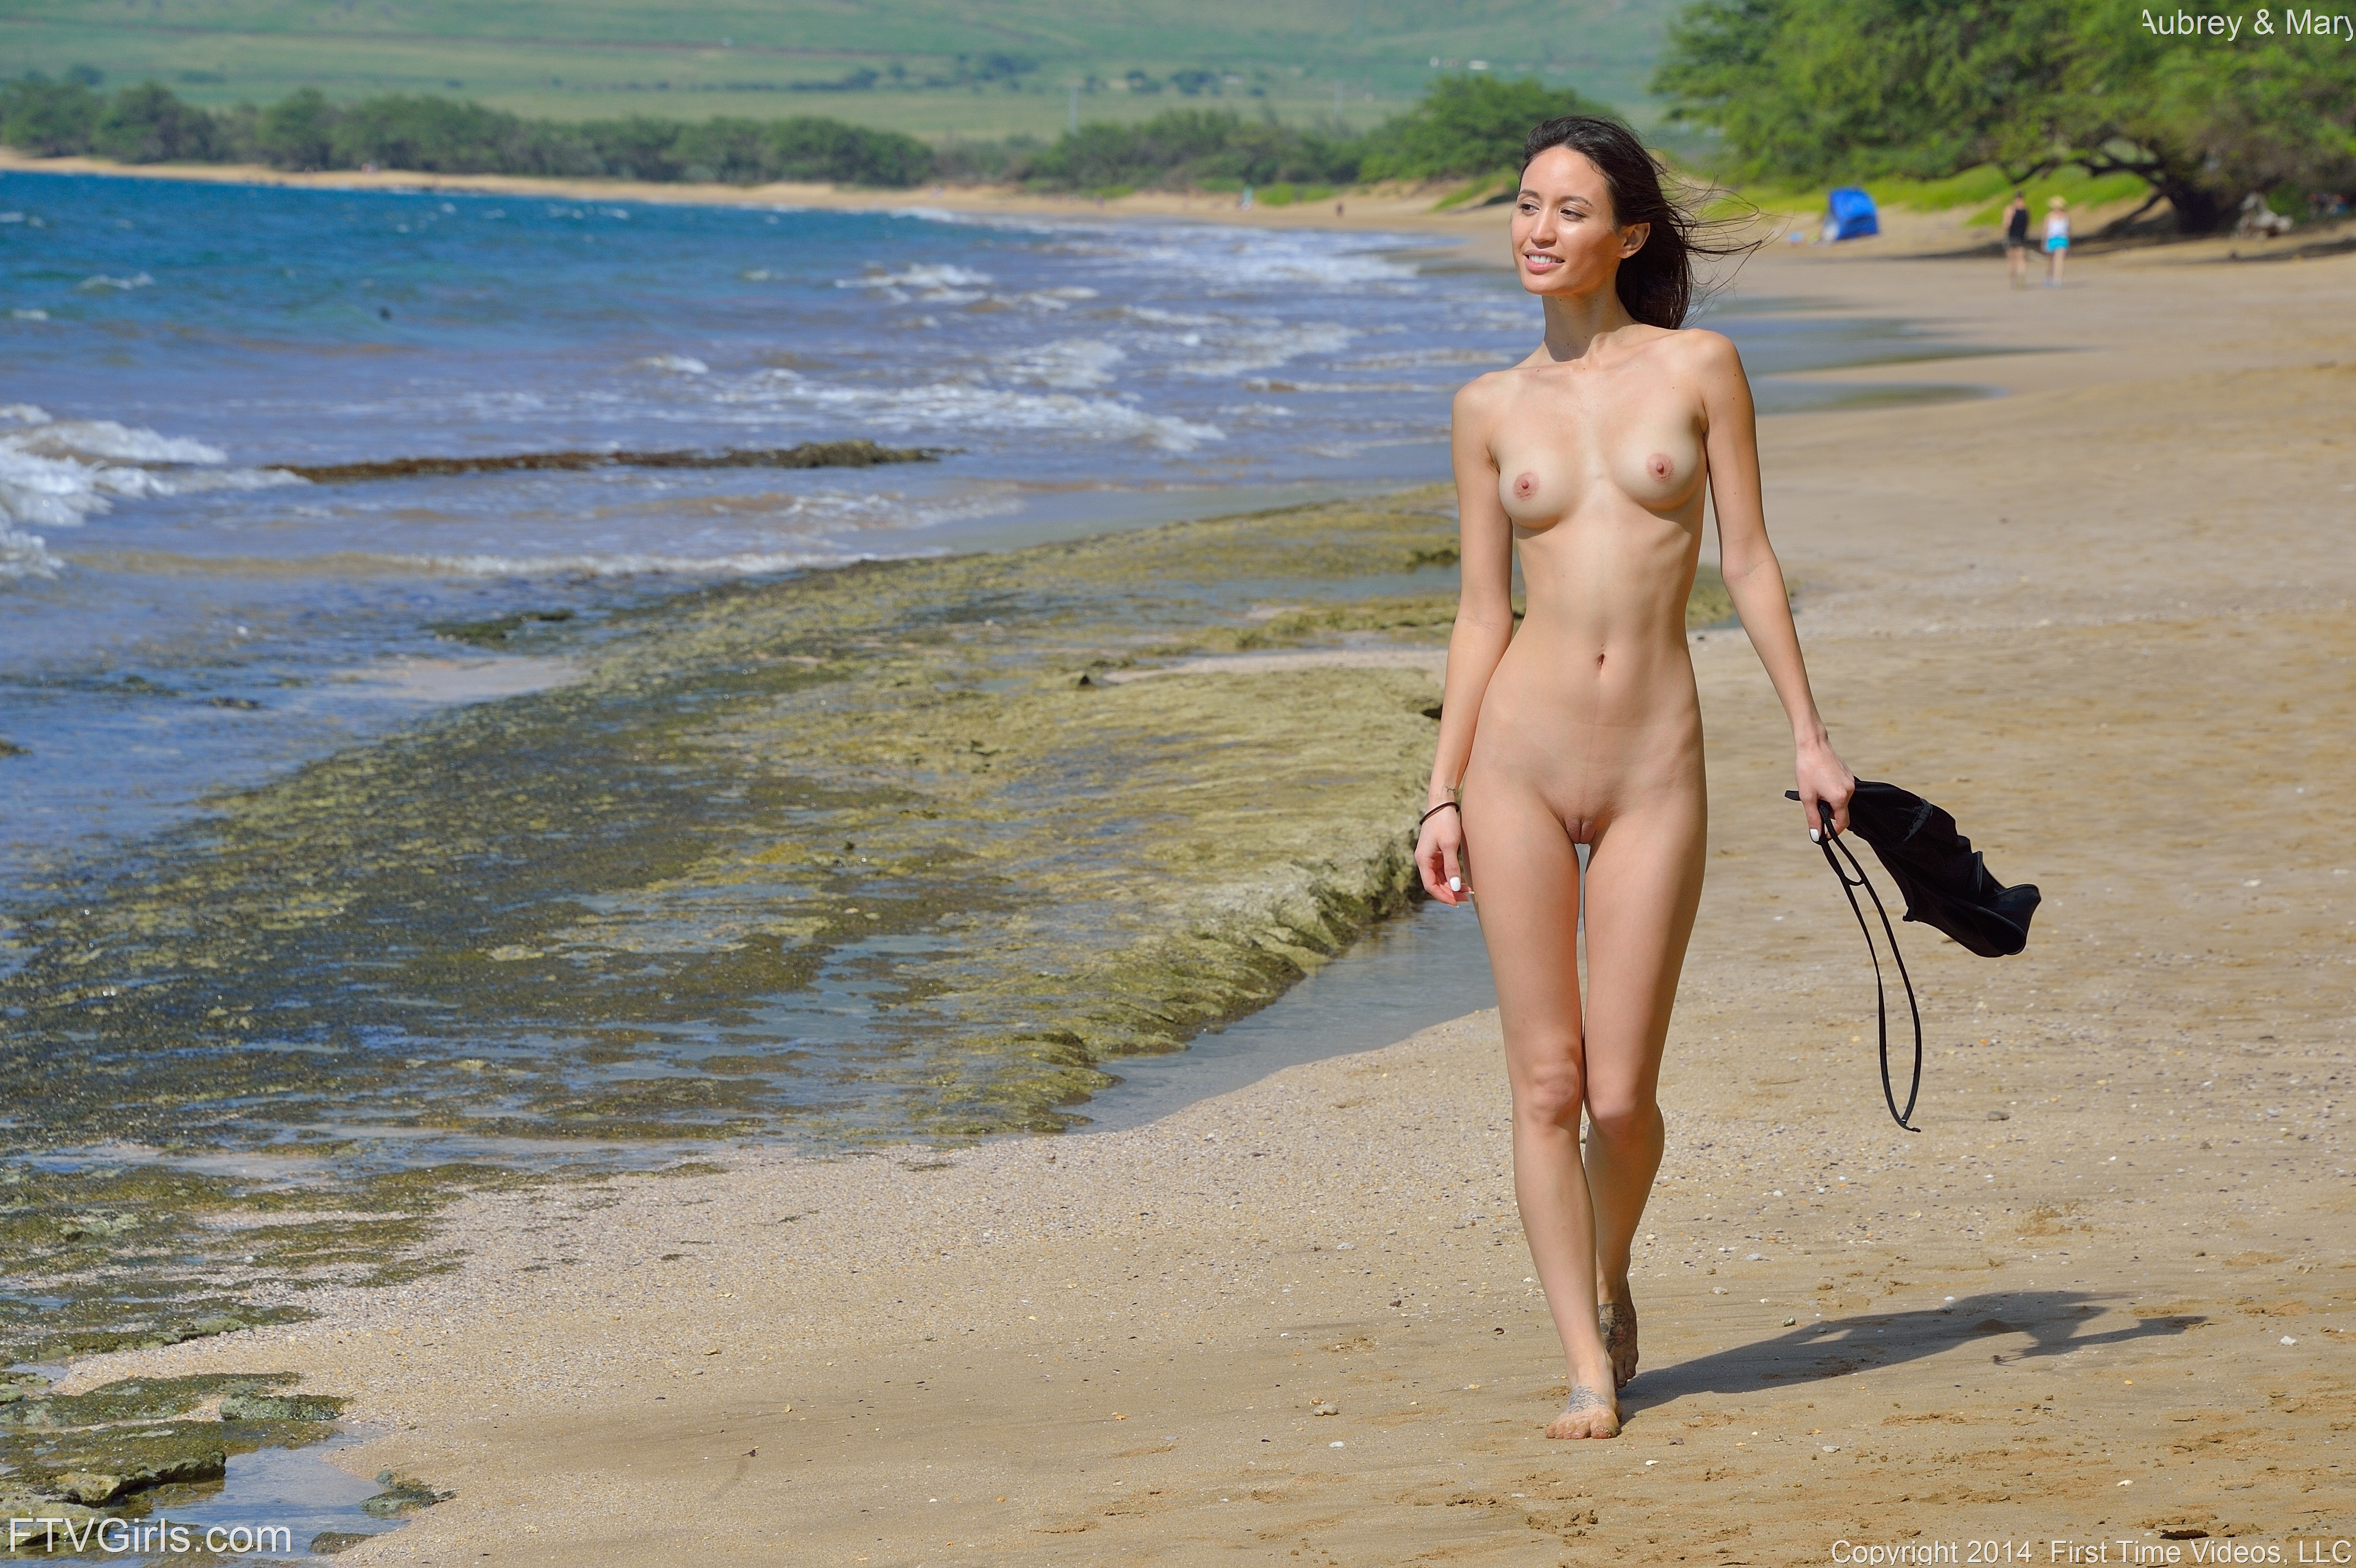 Consider, woman first time nude beach